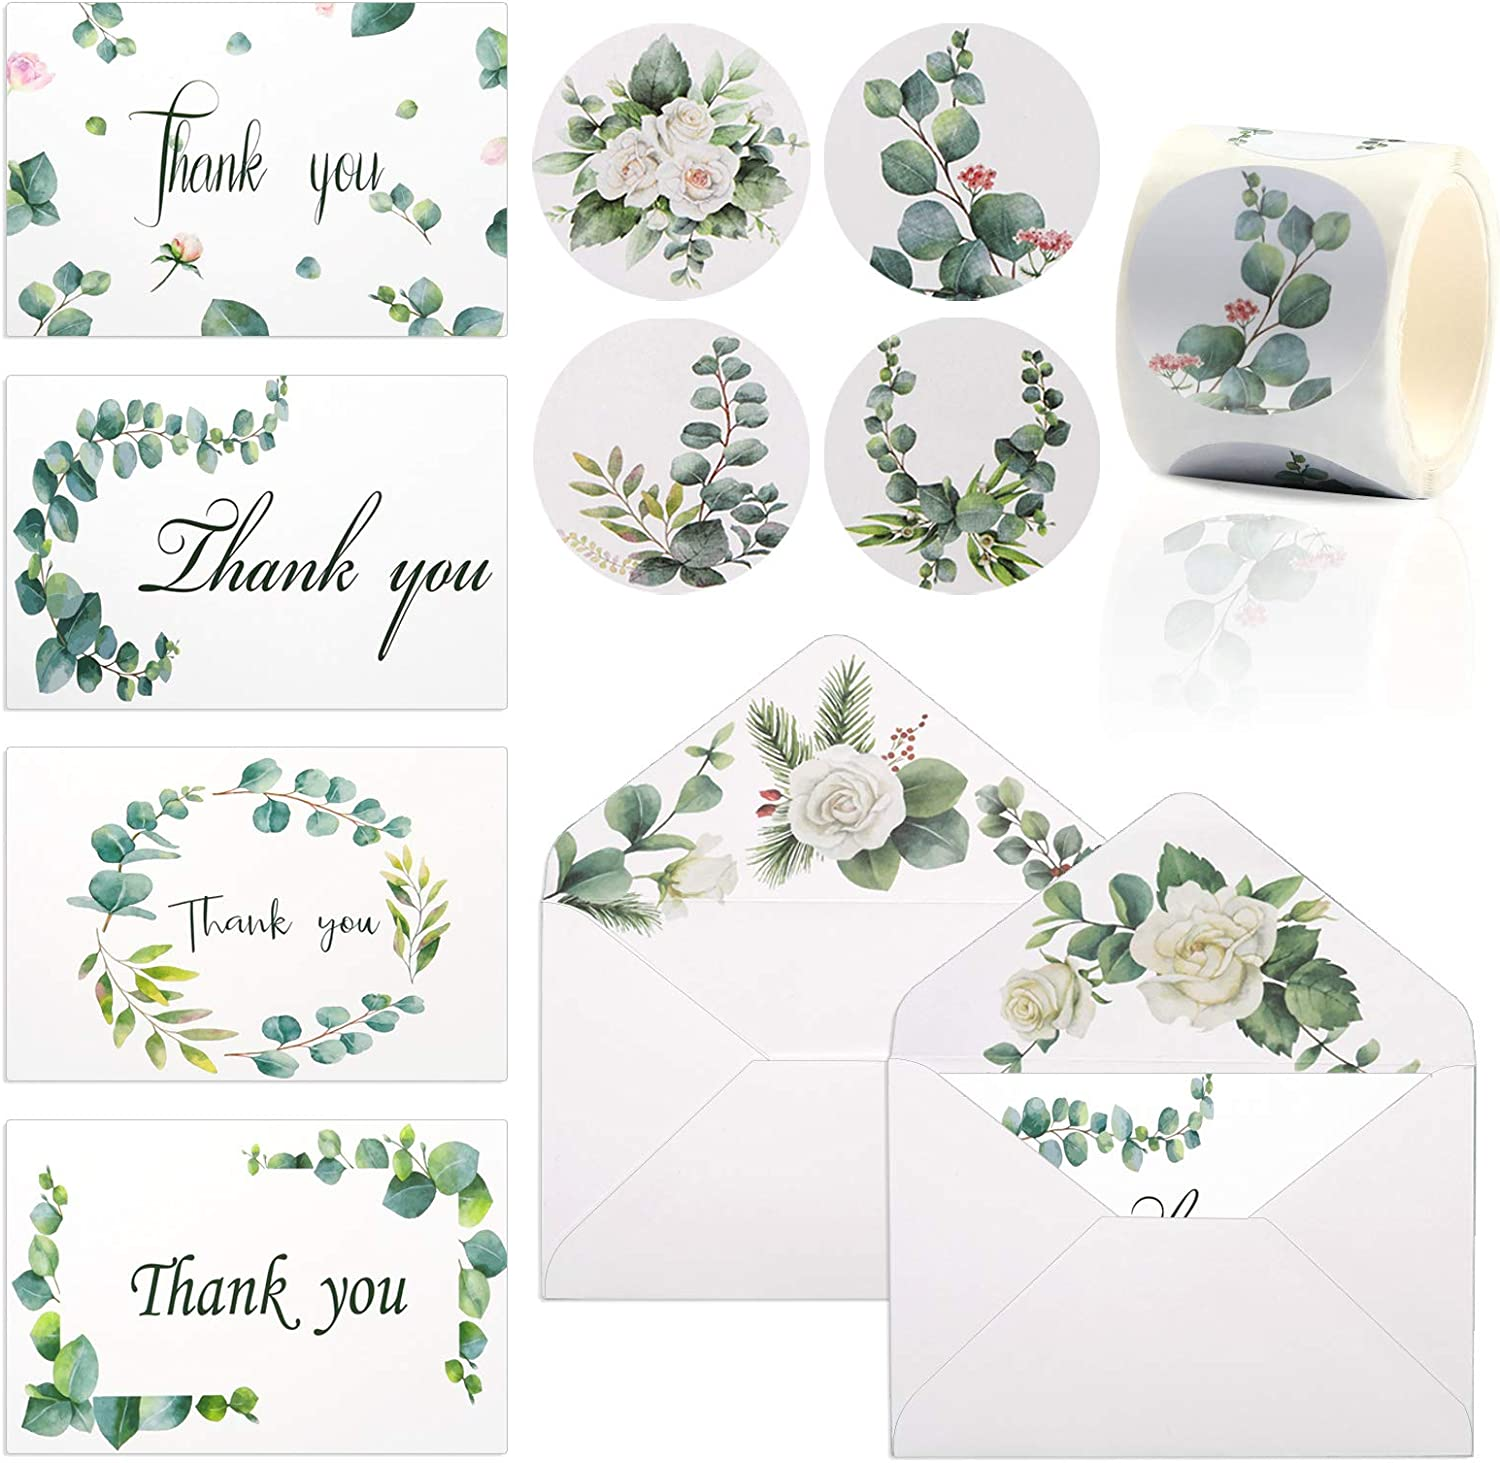 Thank You Cards with Envelopes Set, 48PCS Floral Thank You Cards with Envelopes and Labels for Small Business Retail Store Business Weddings Anniversary Baby Shower